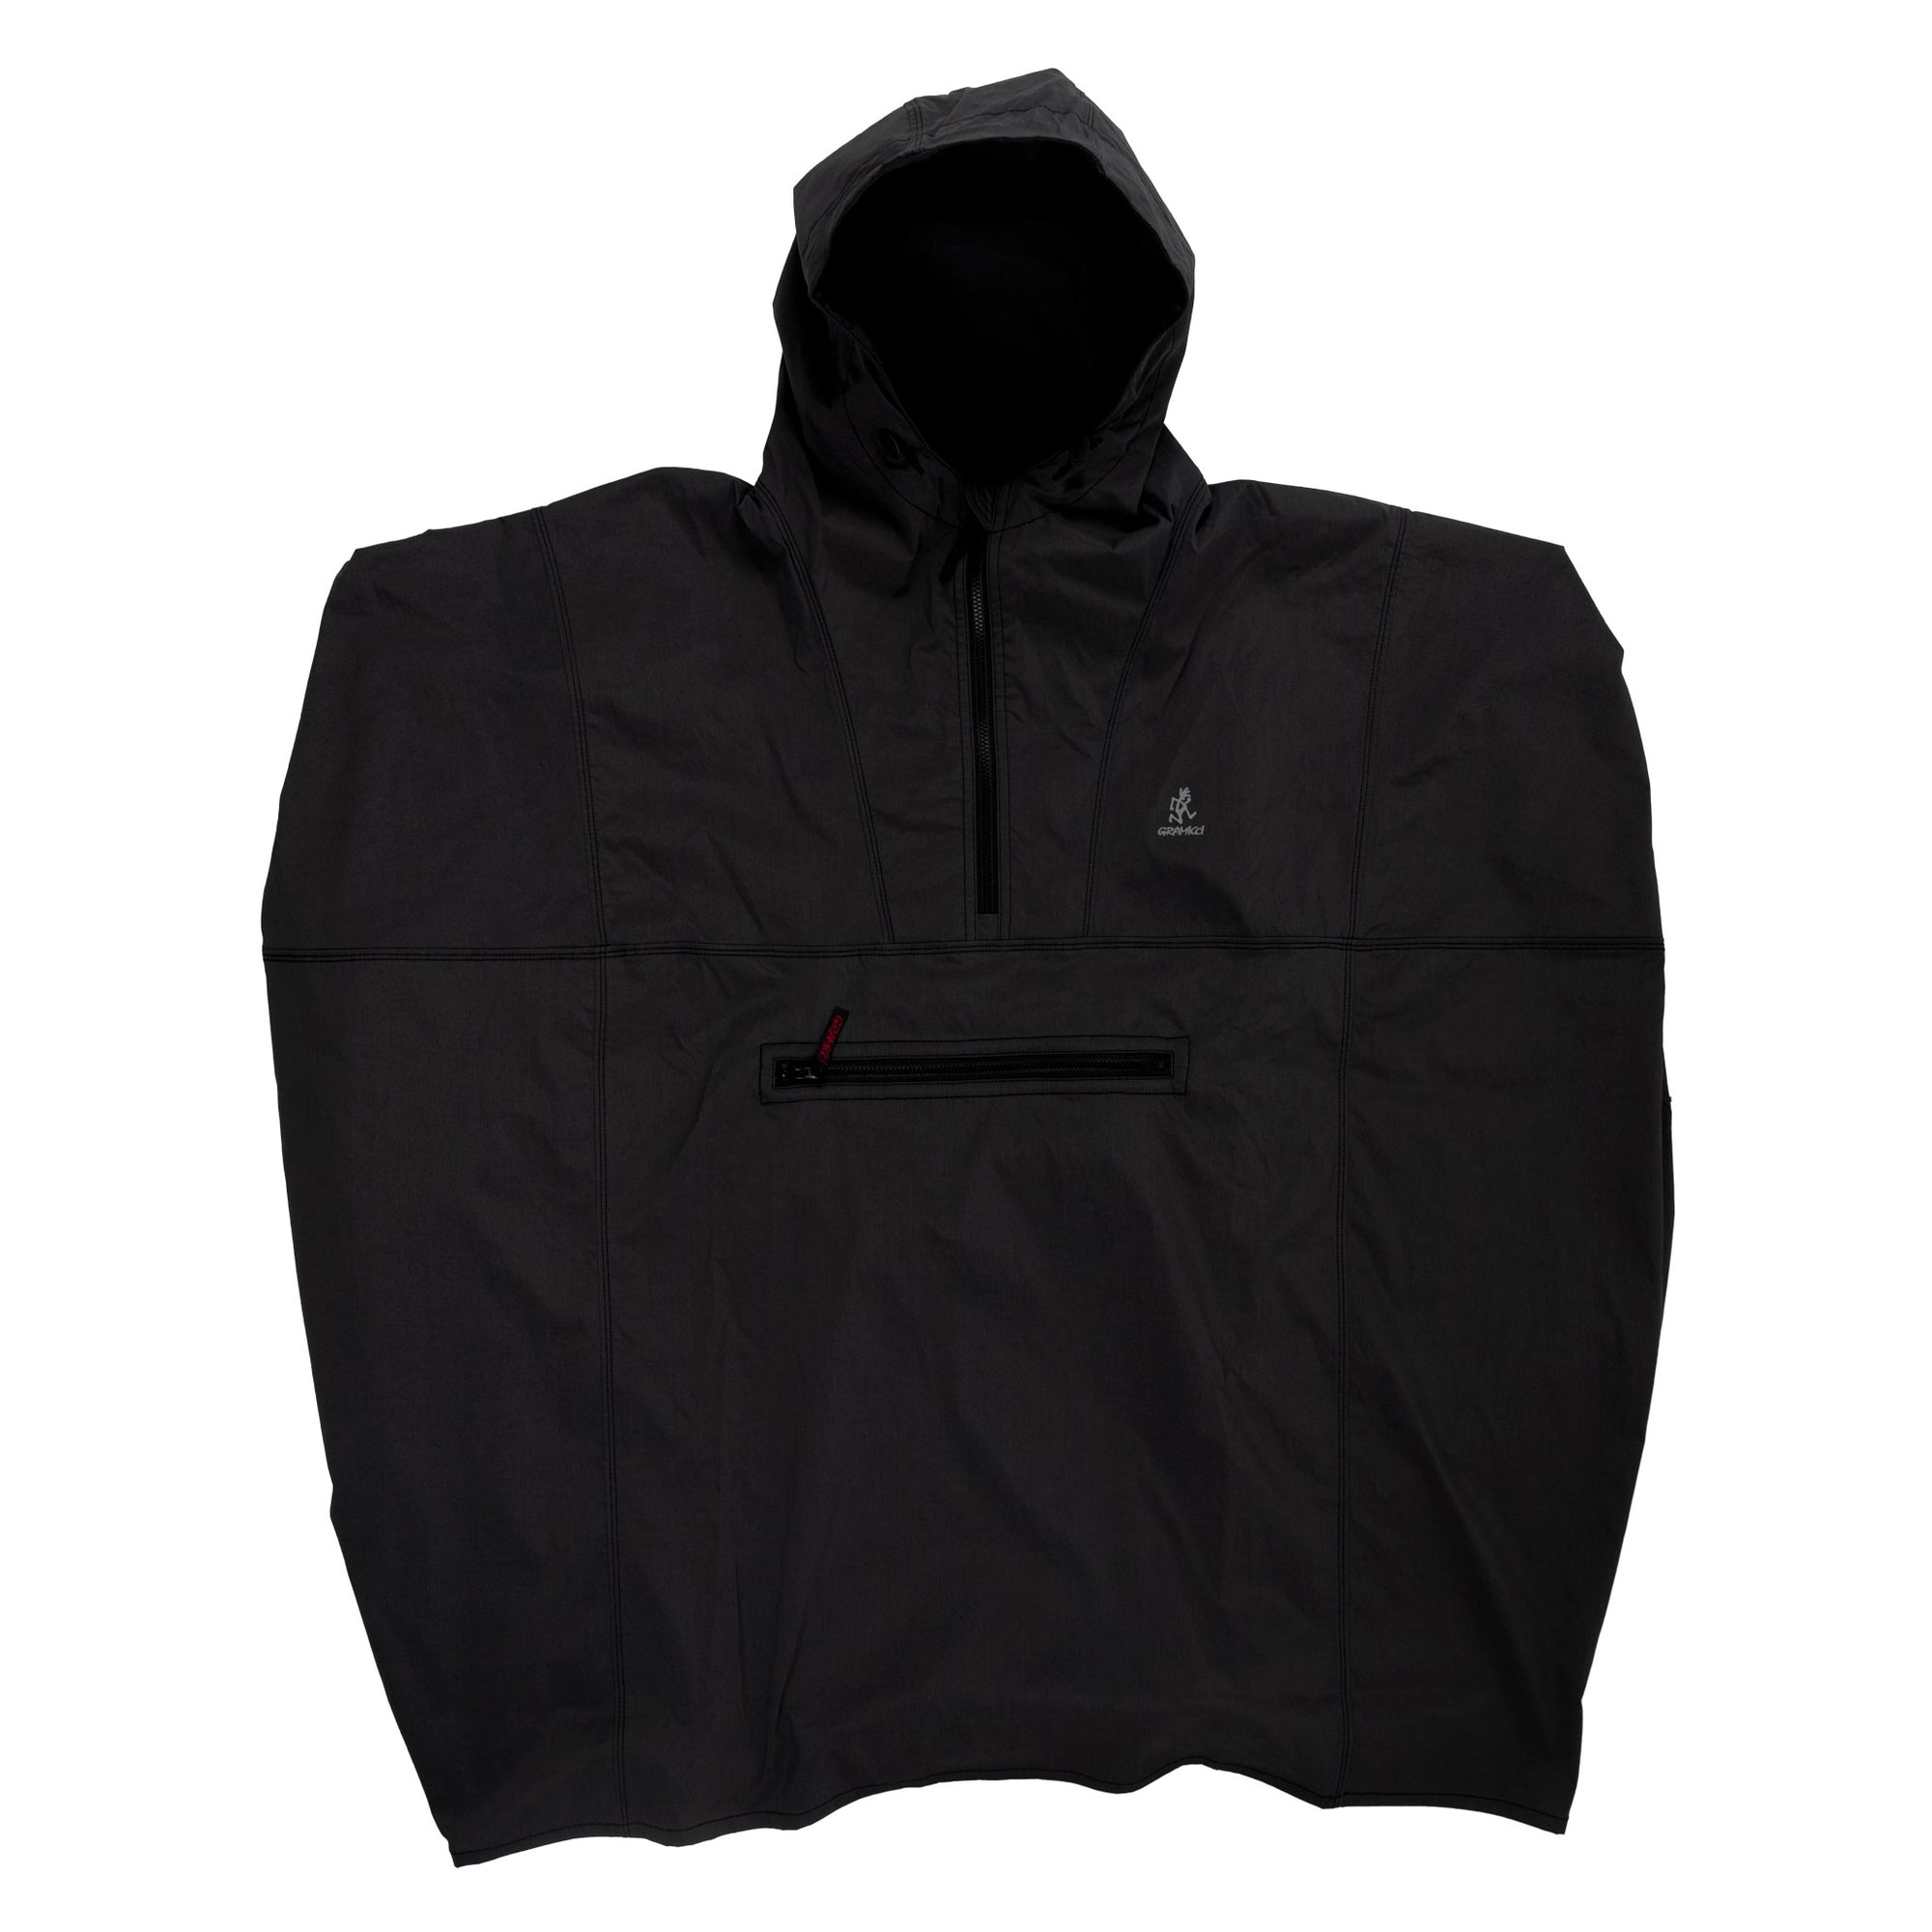 gramicci japan Rainier Cordura Poncho Black outdoor rain gear front